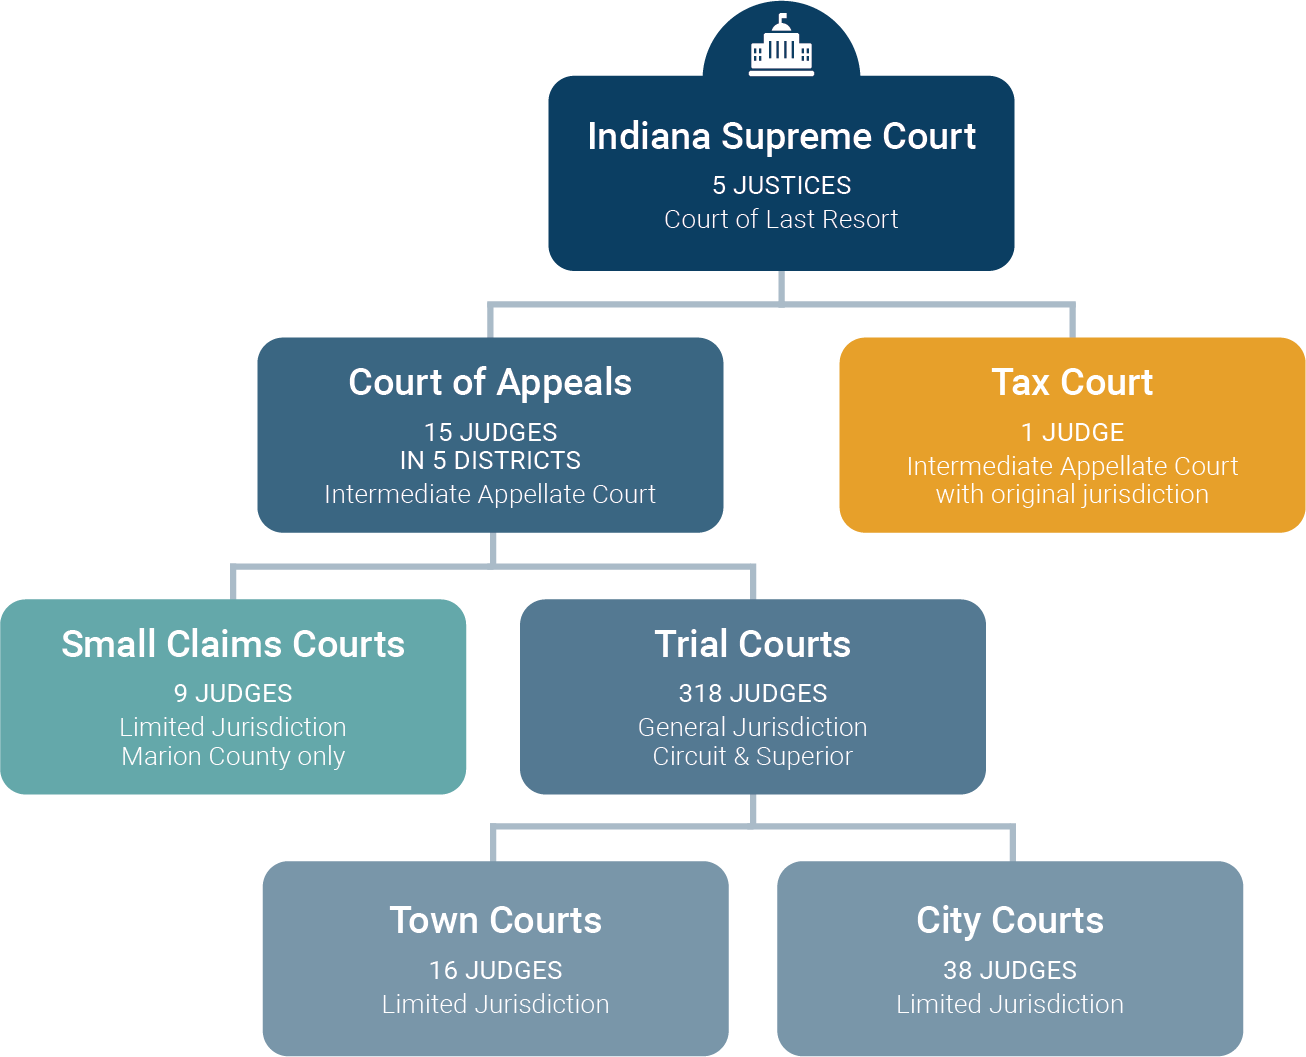 Trial Courts As Organizations